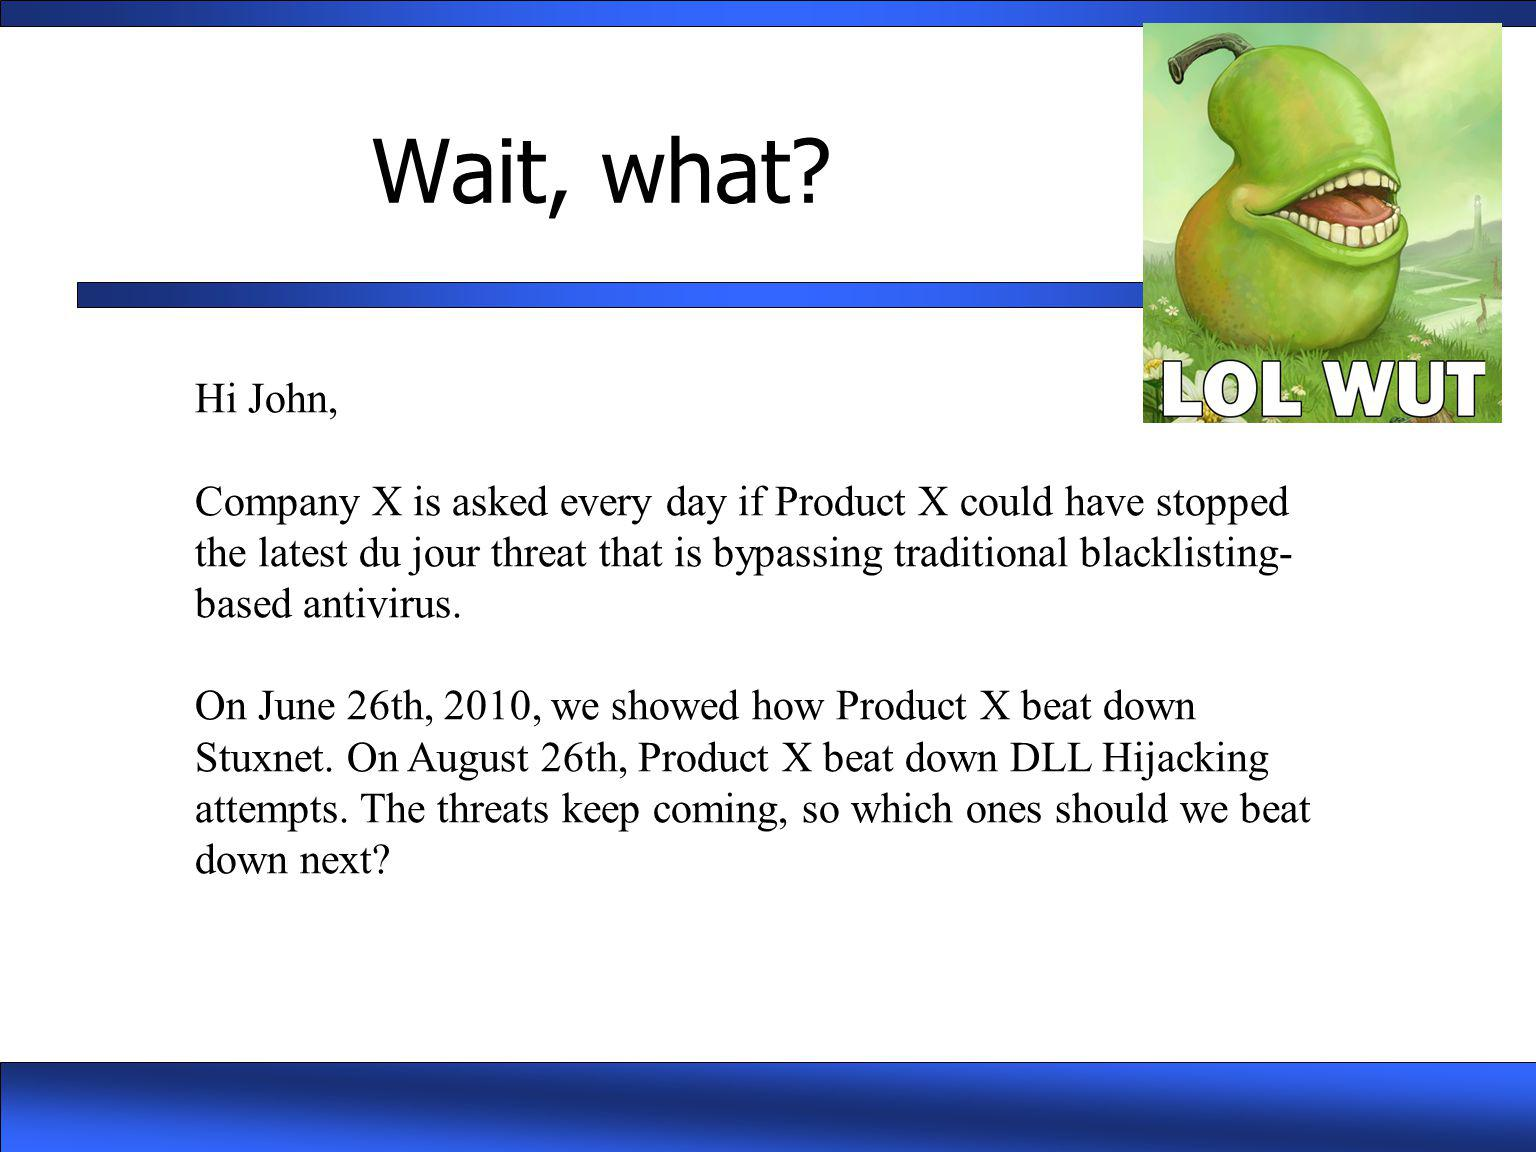 Wait, what? Hi John, Company X is asked every day if Product X could have stopped the latest du jour threat that is bypassing traditional blacklisting